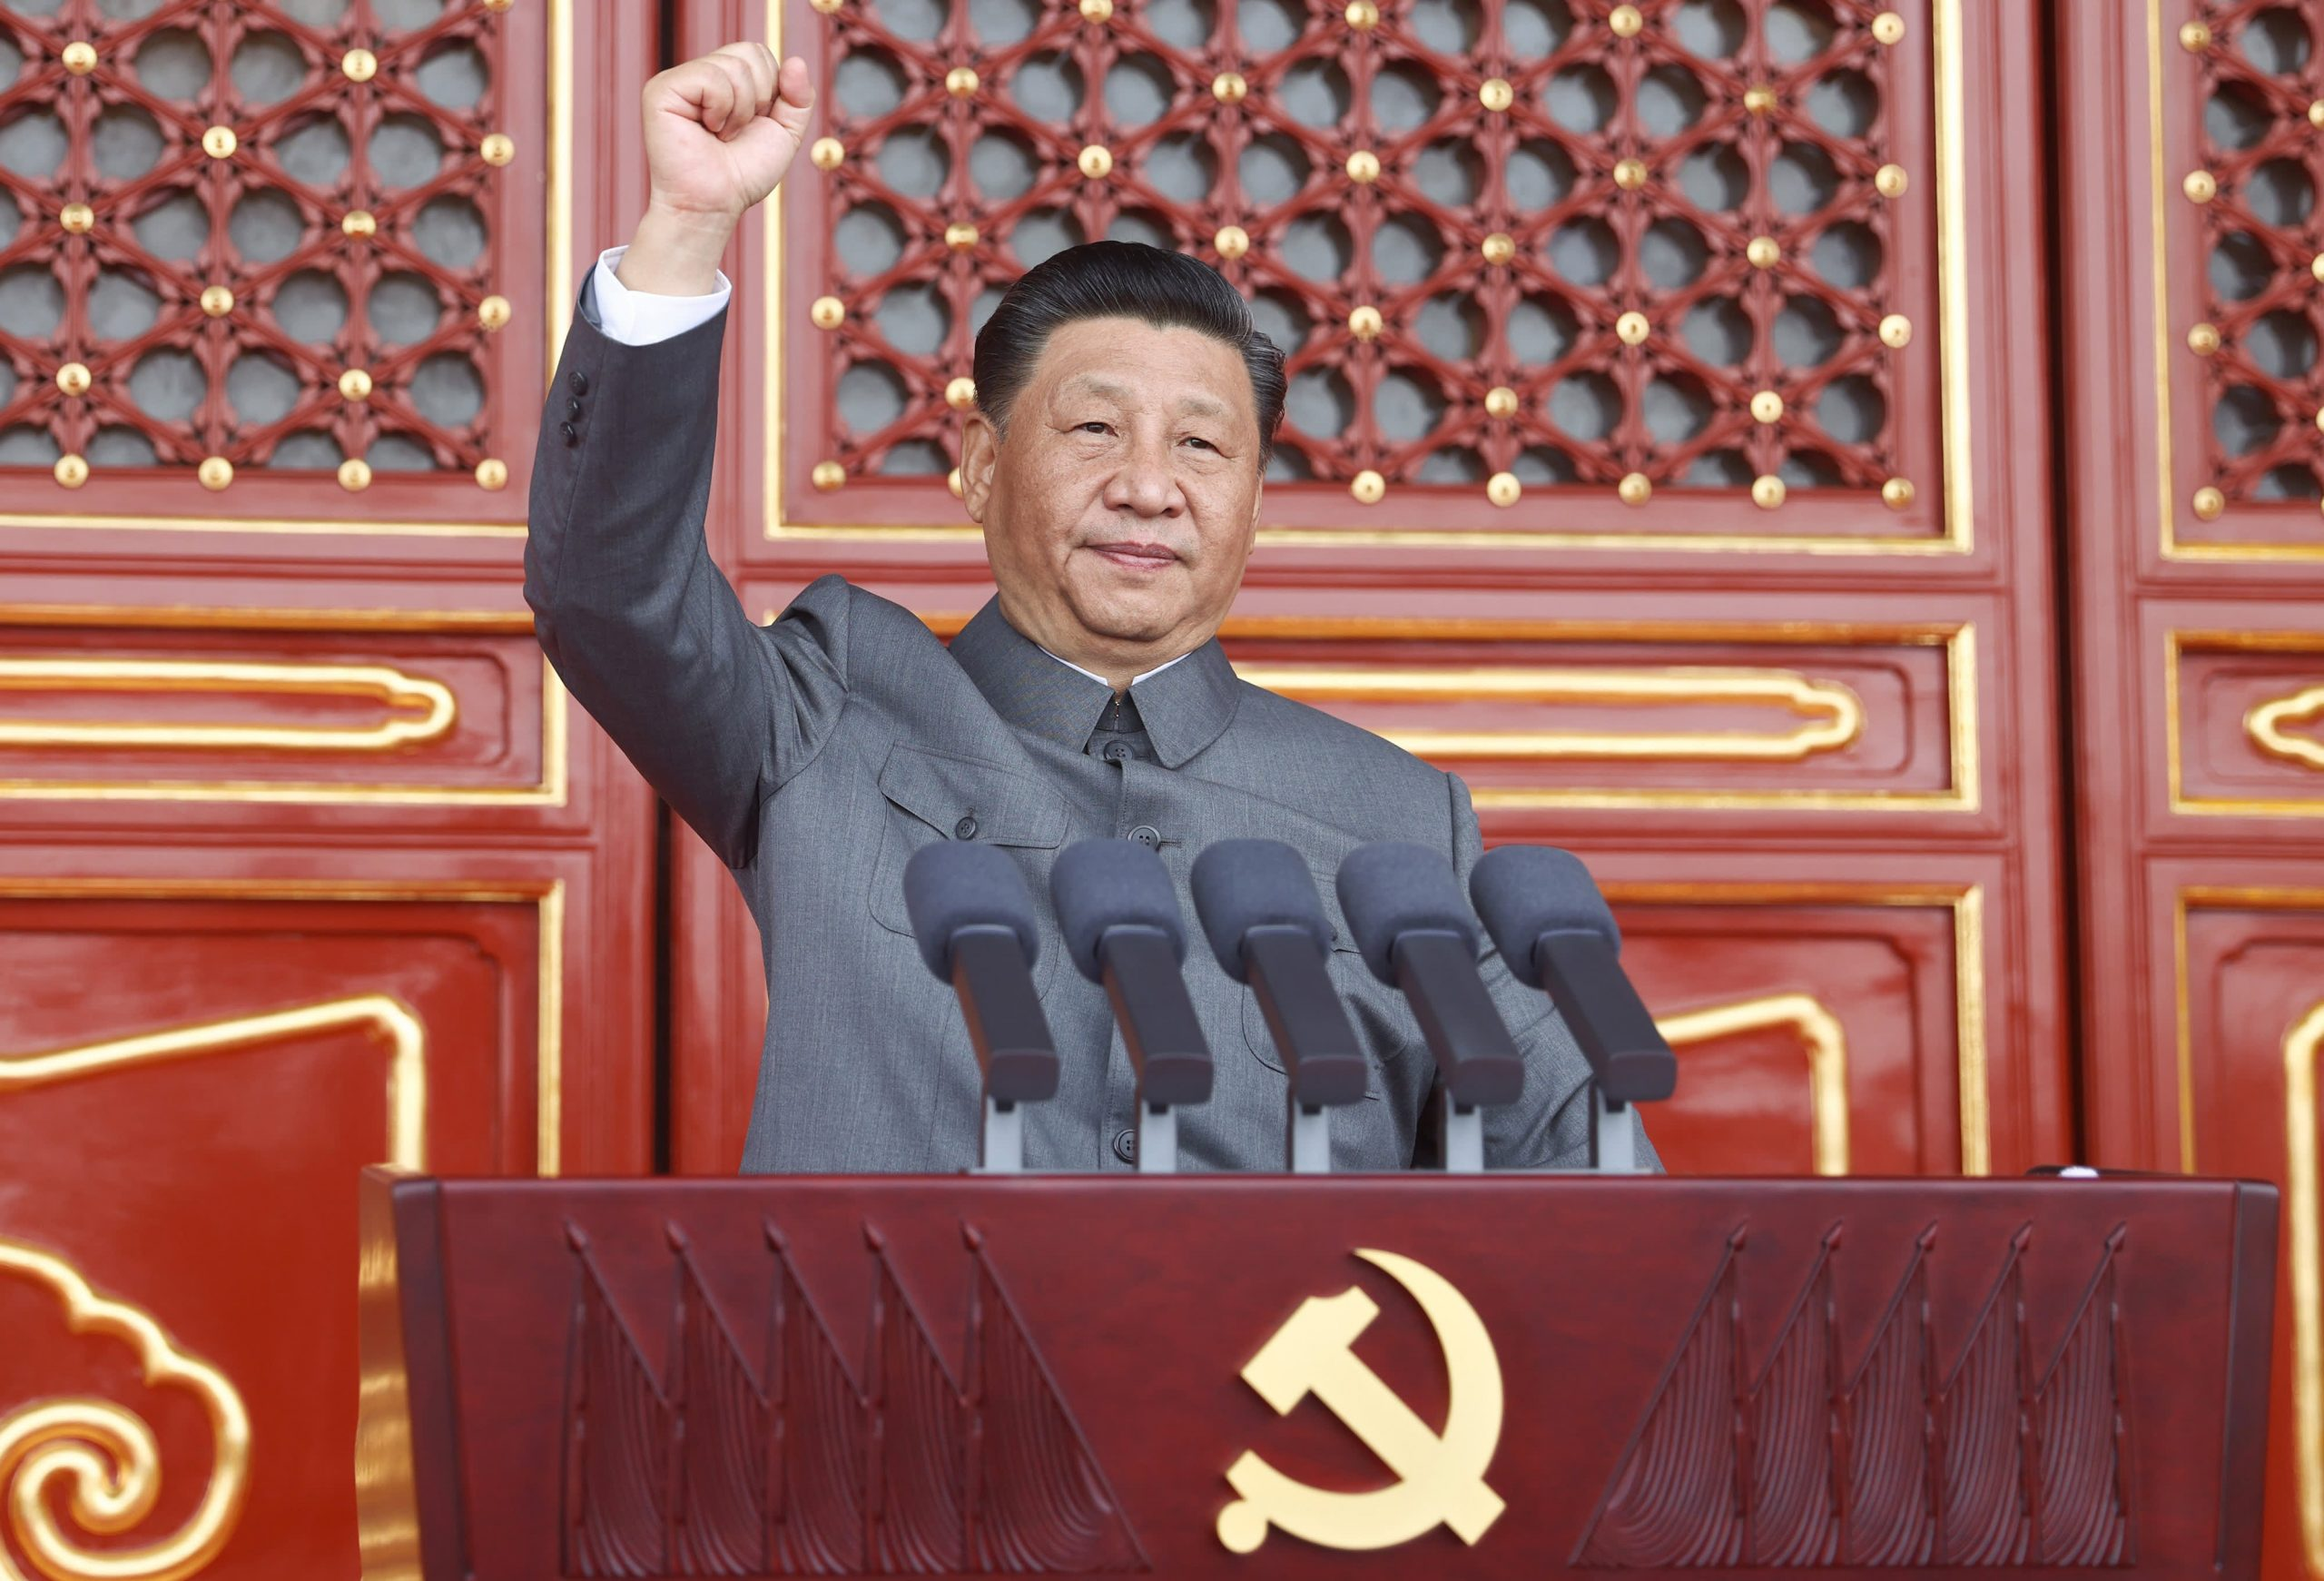 Setting his eyes on the next 100 years, Xi seizes the chance to lead China to greater power